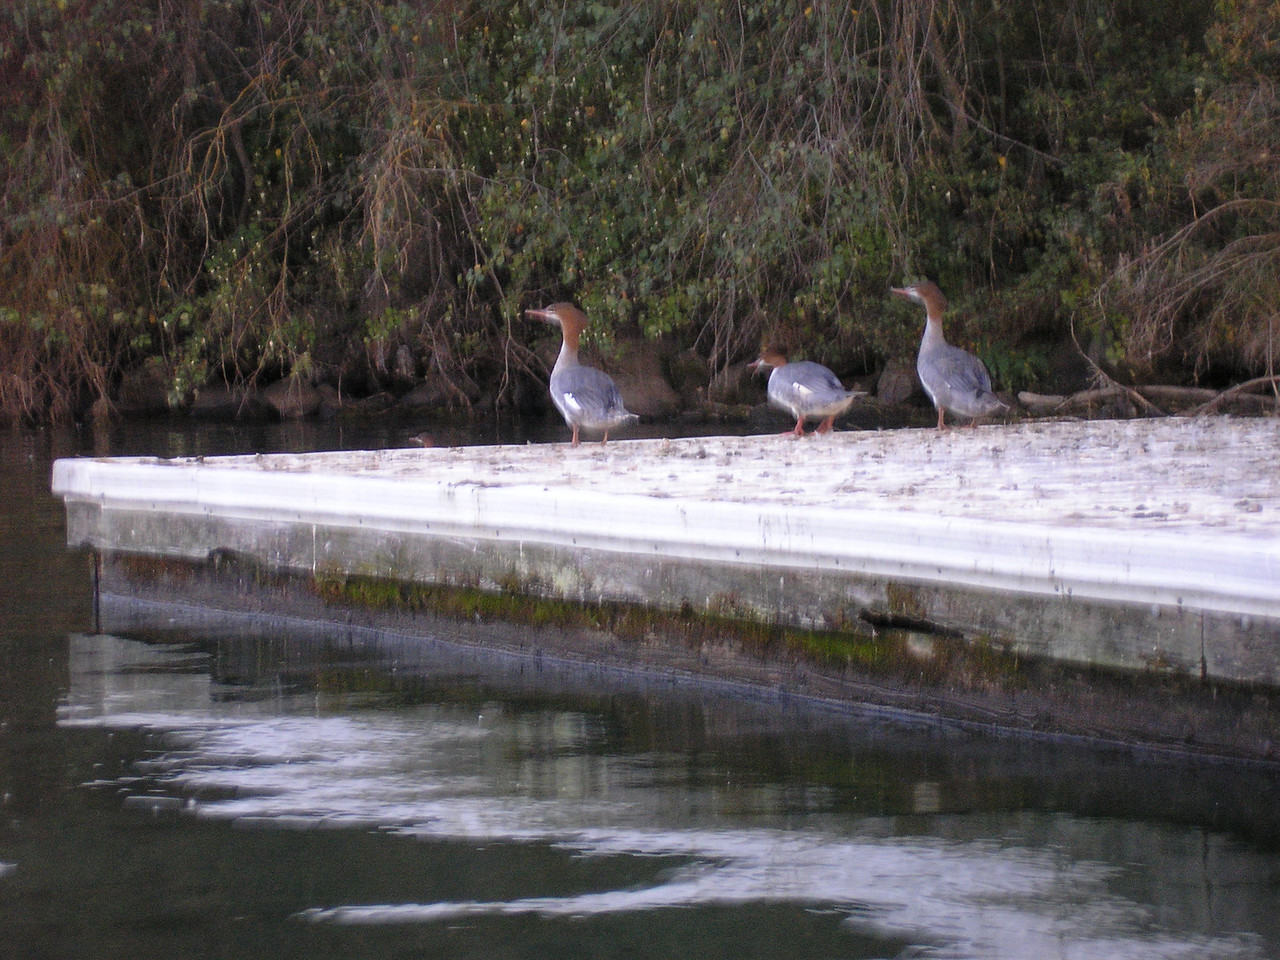 These Ducks are called Common Merganzers.  The female has a red head and the feathers at the back of the head are spiked.